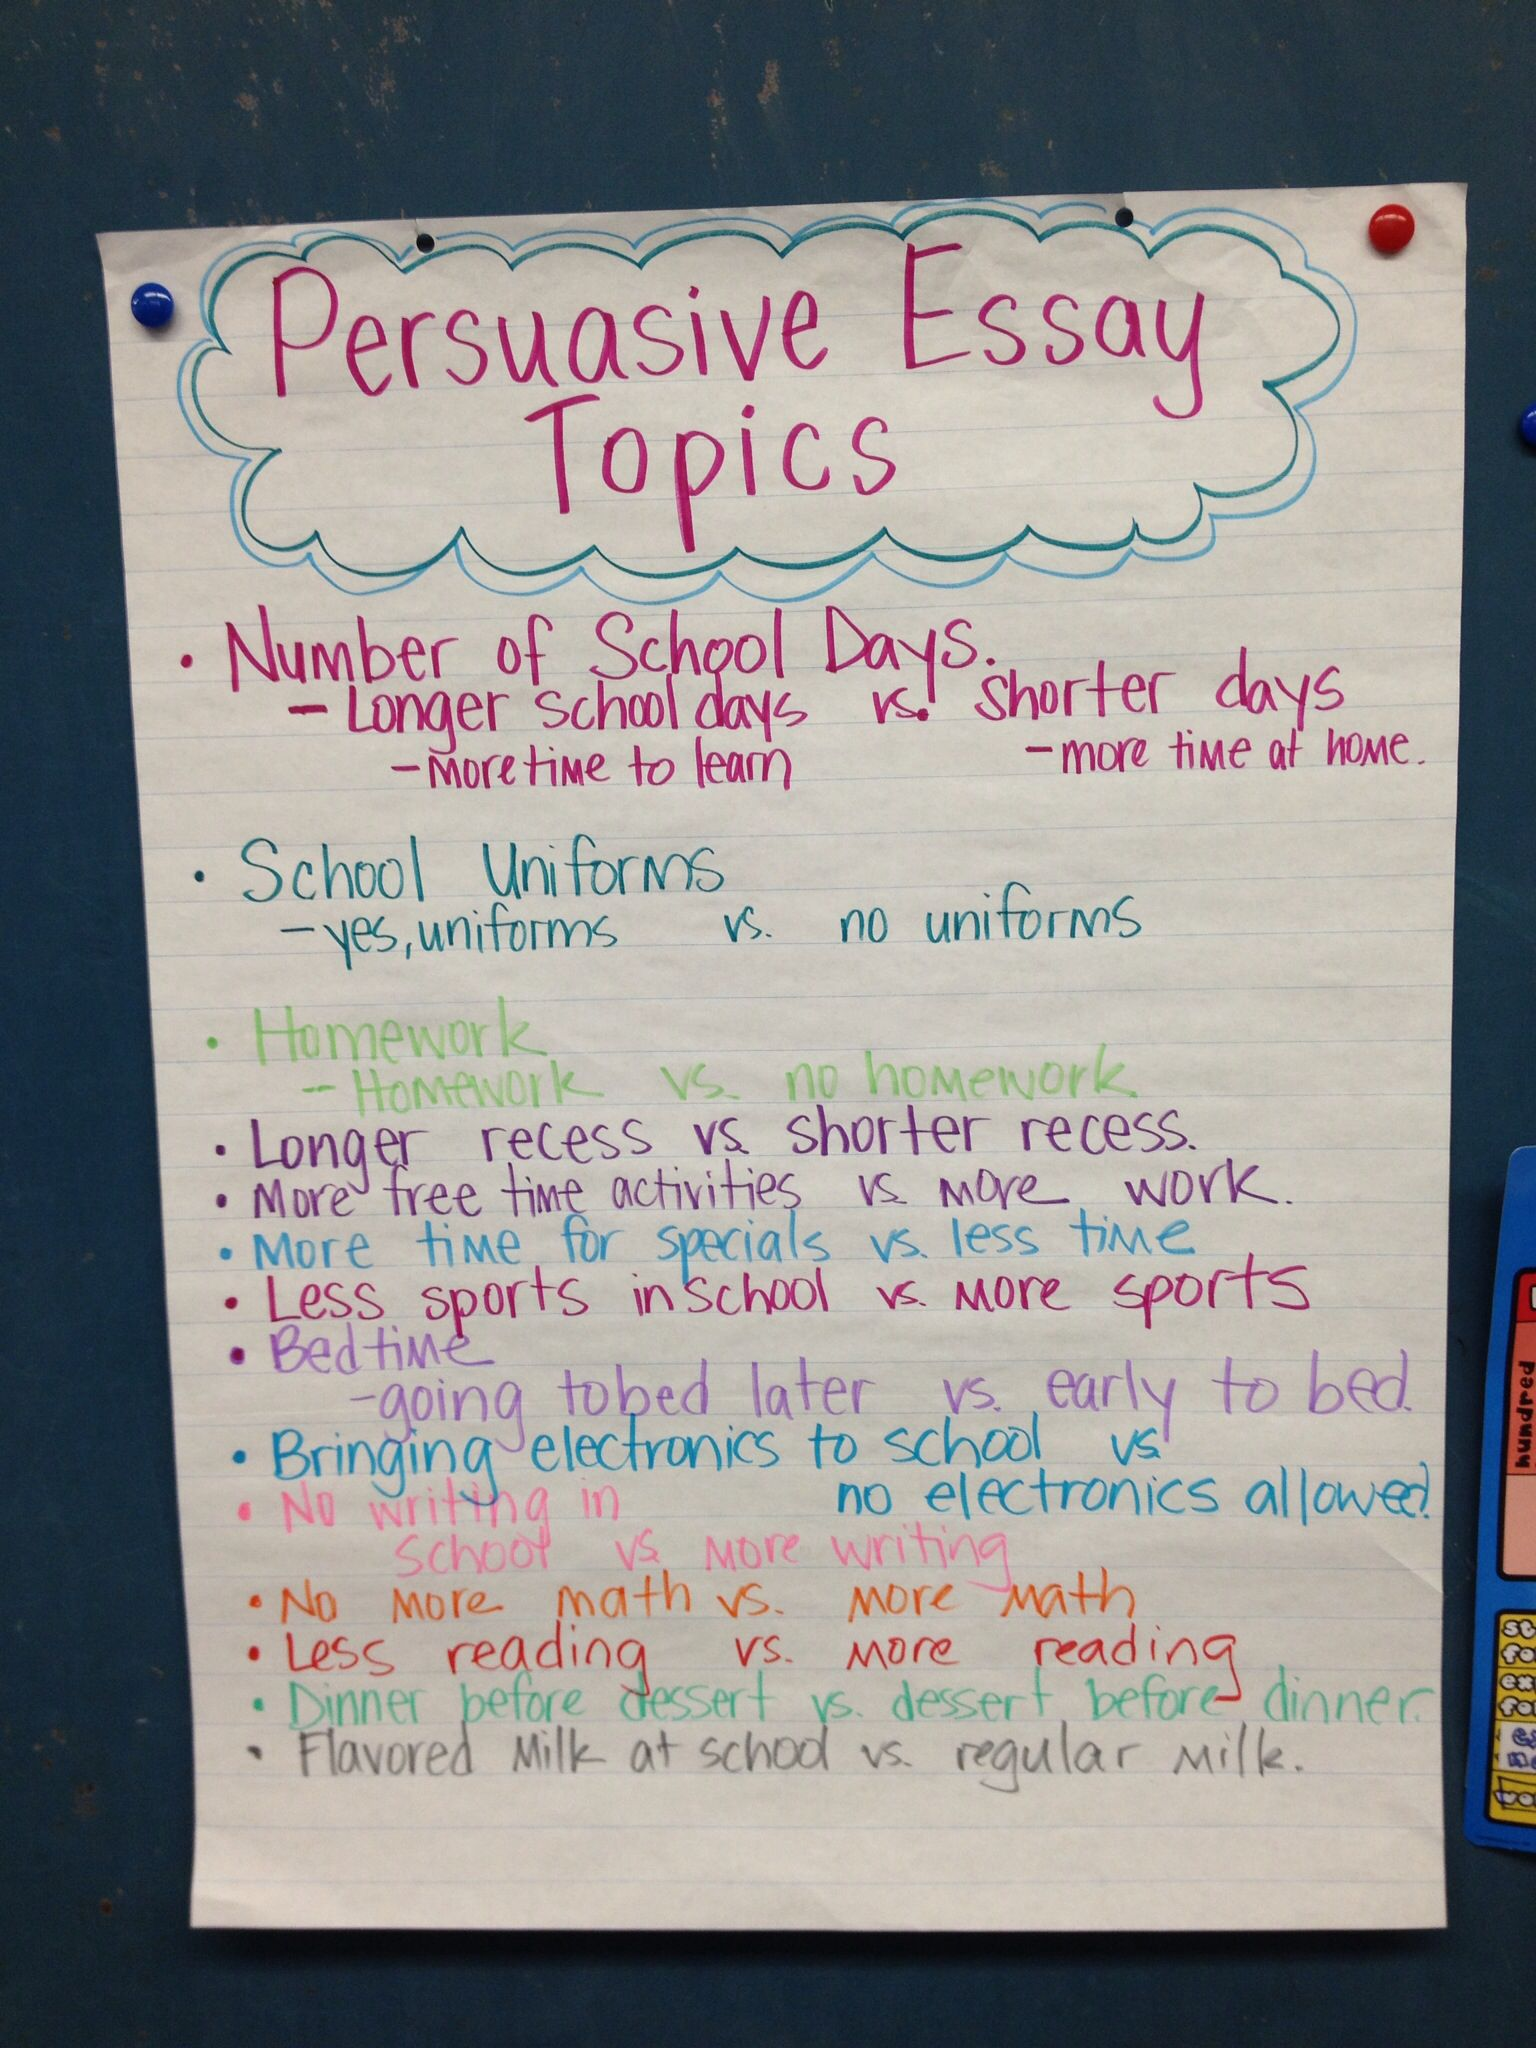 good ideas for persuasive essays